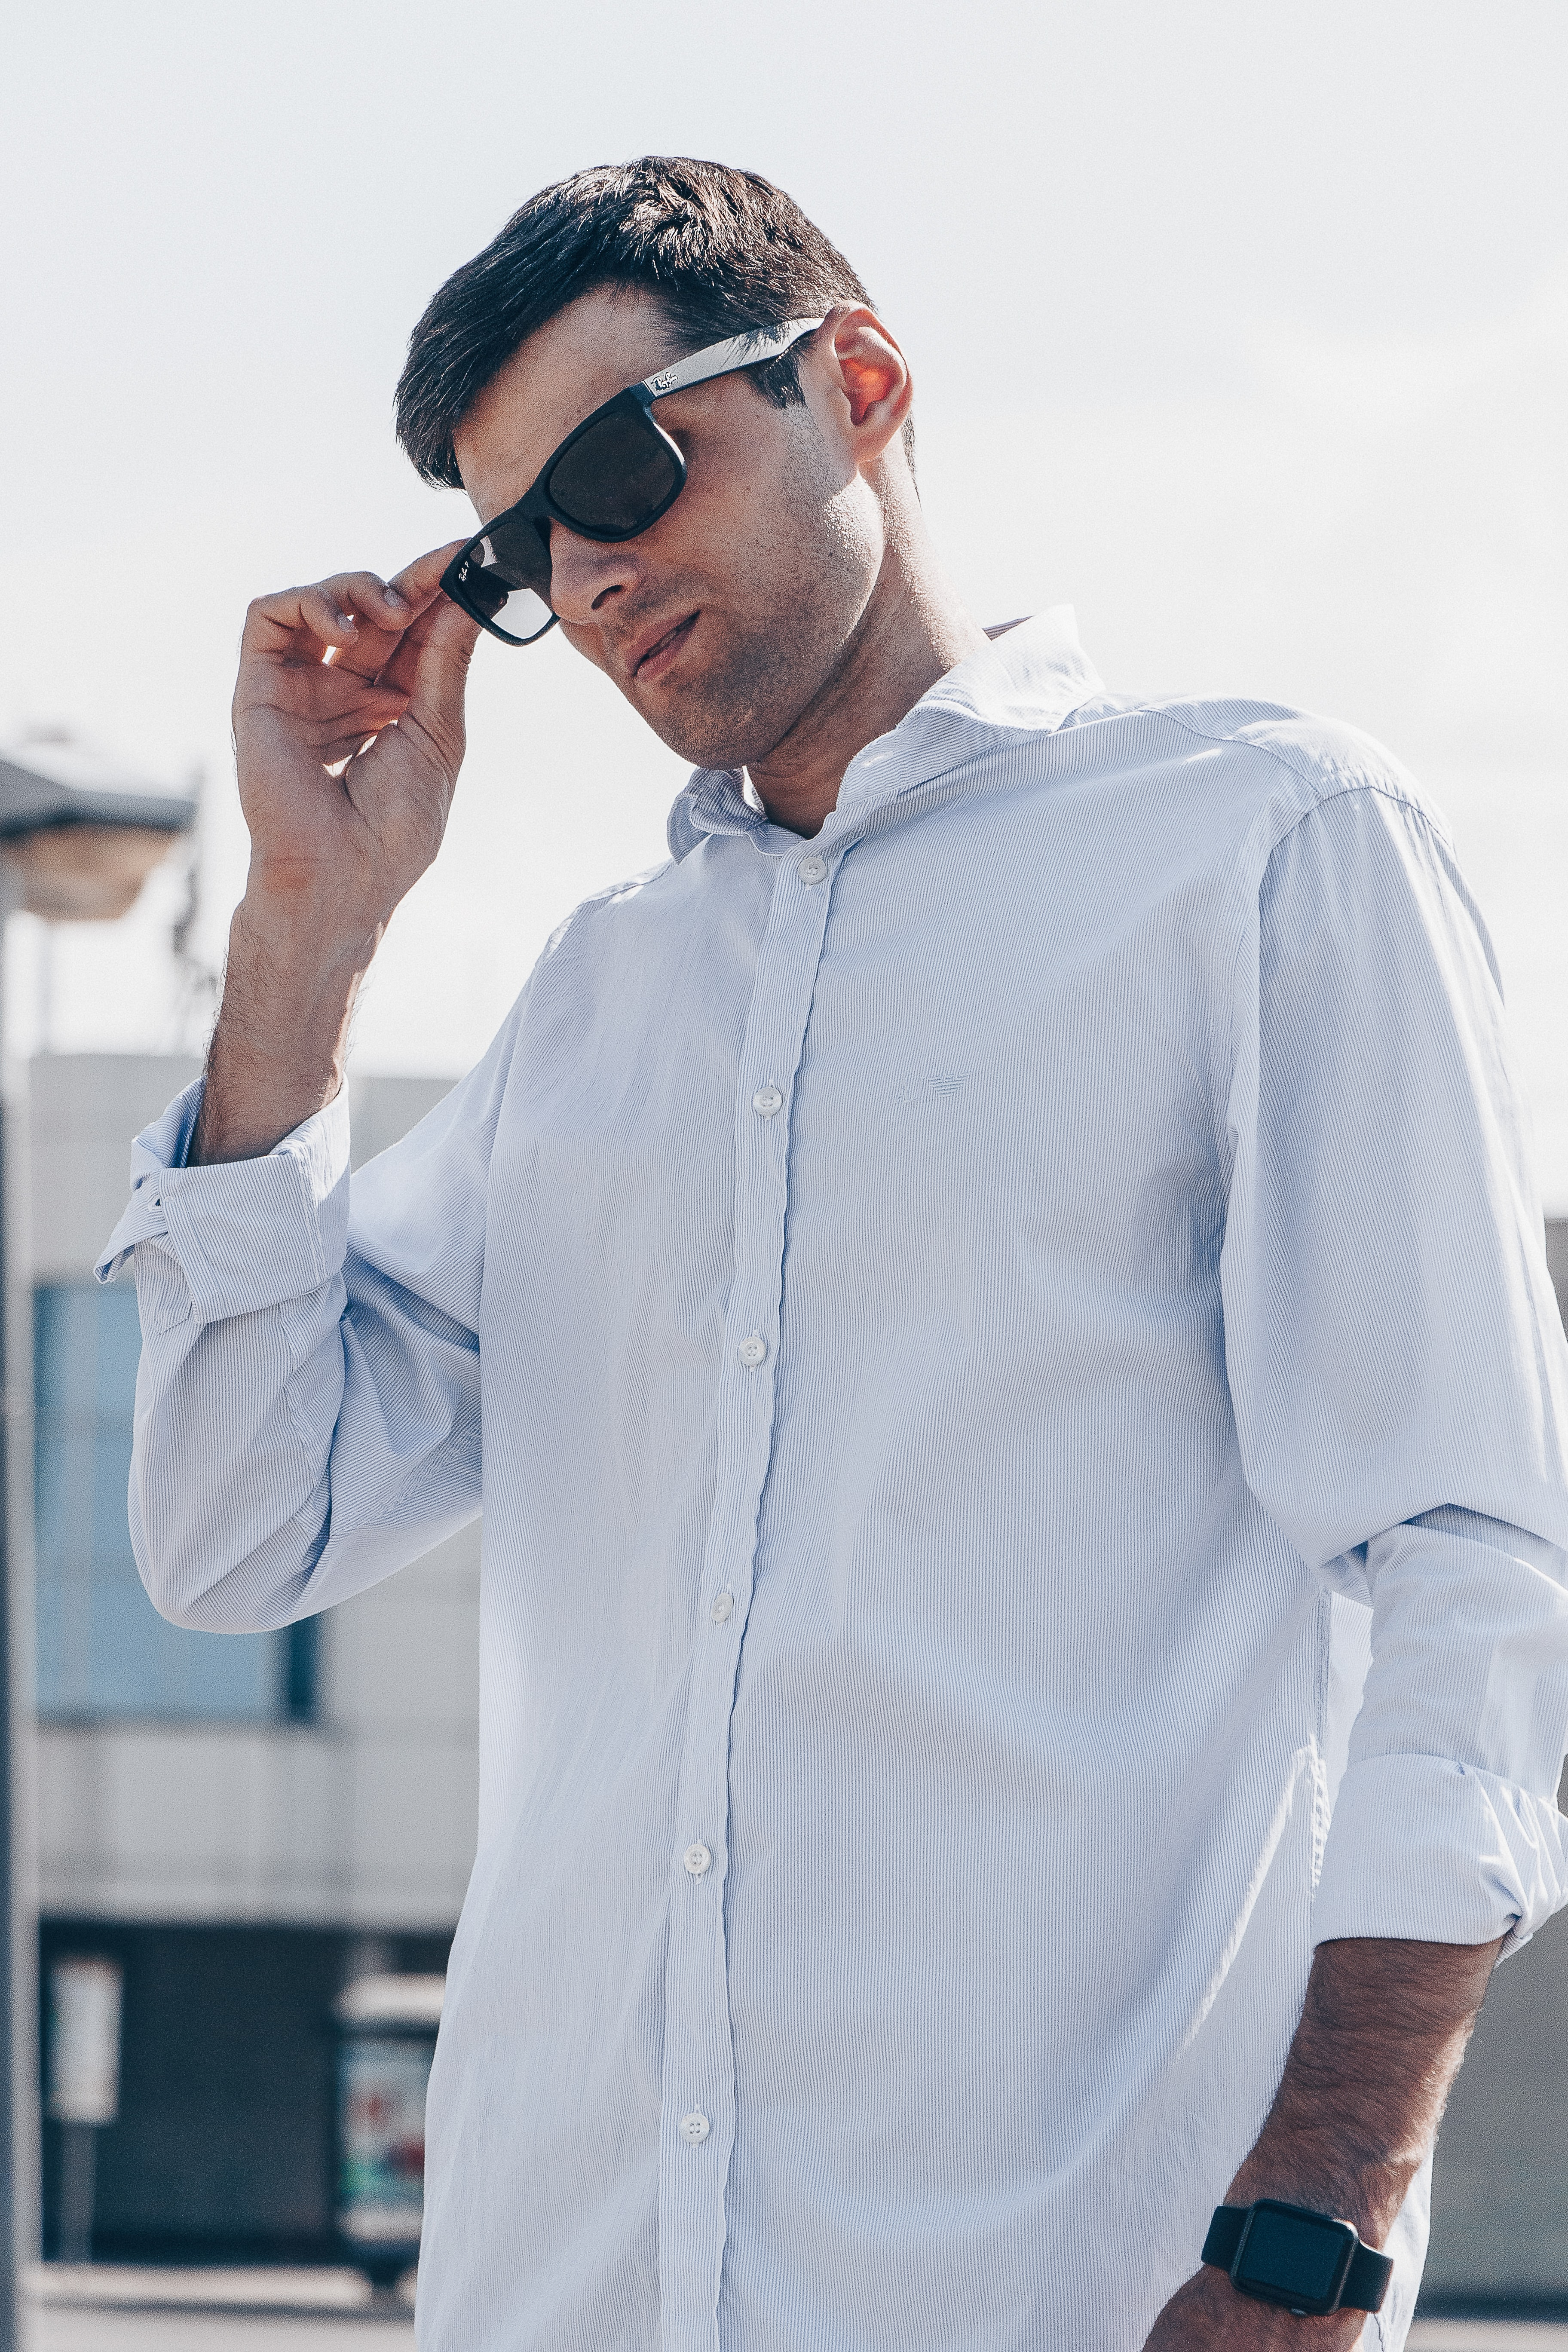 man wearing white dress shirt holding sunglasses